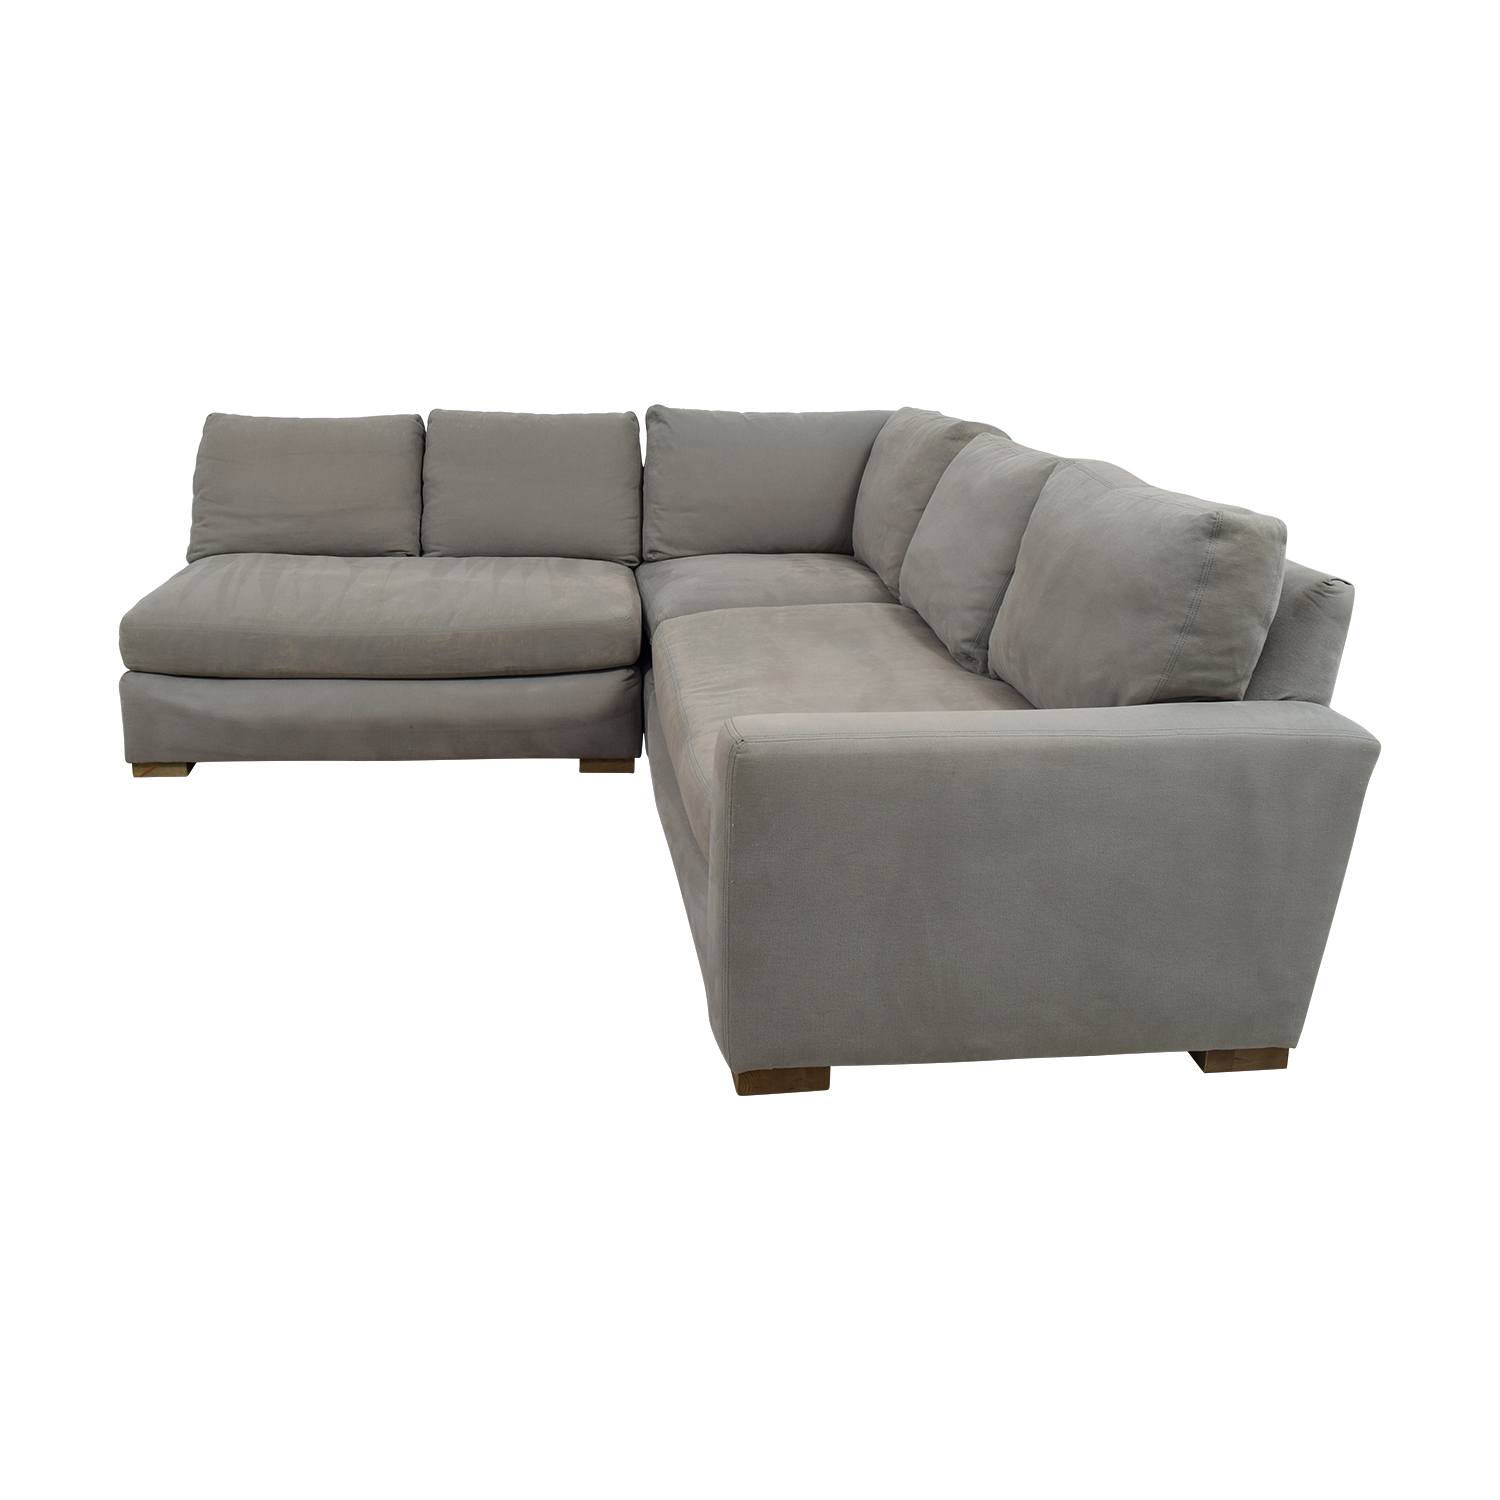 Restoration Hardware Restoration Hardware Grey L-Shaped Sectional Sofas